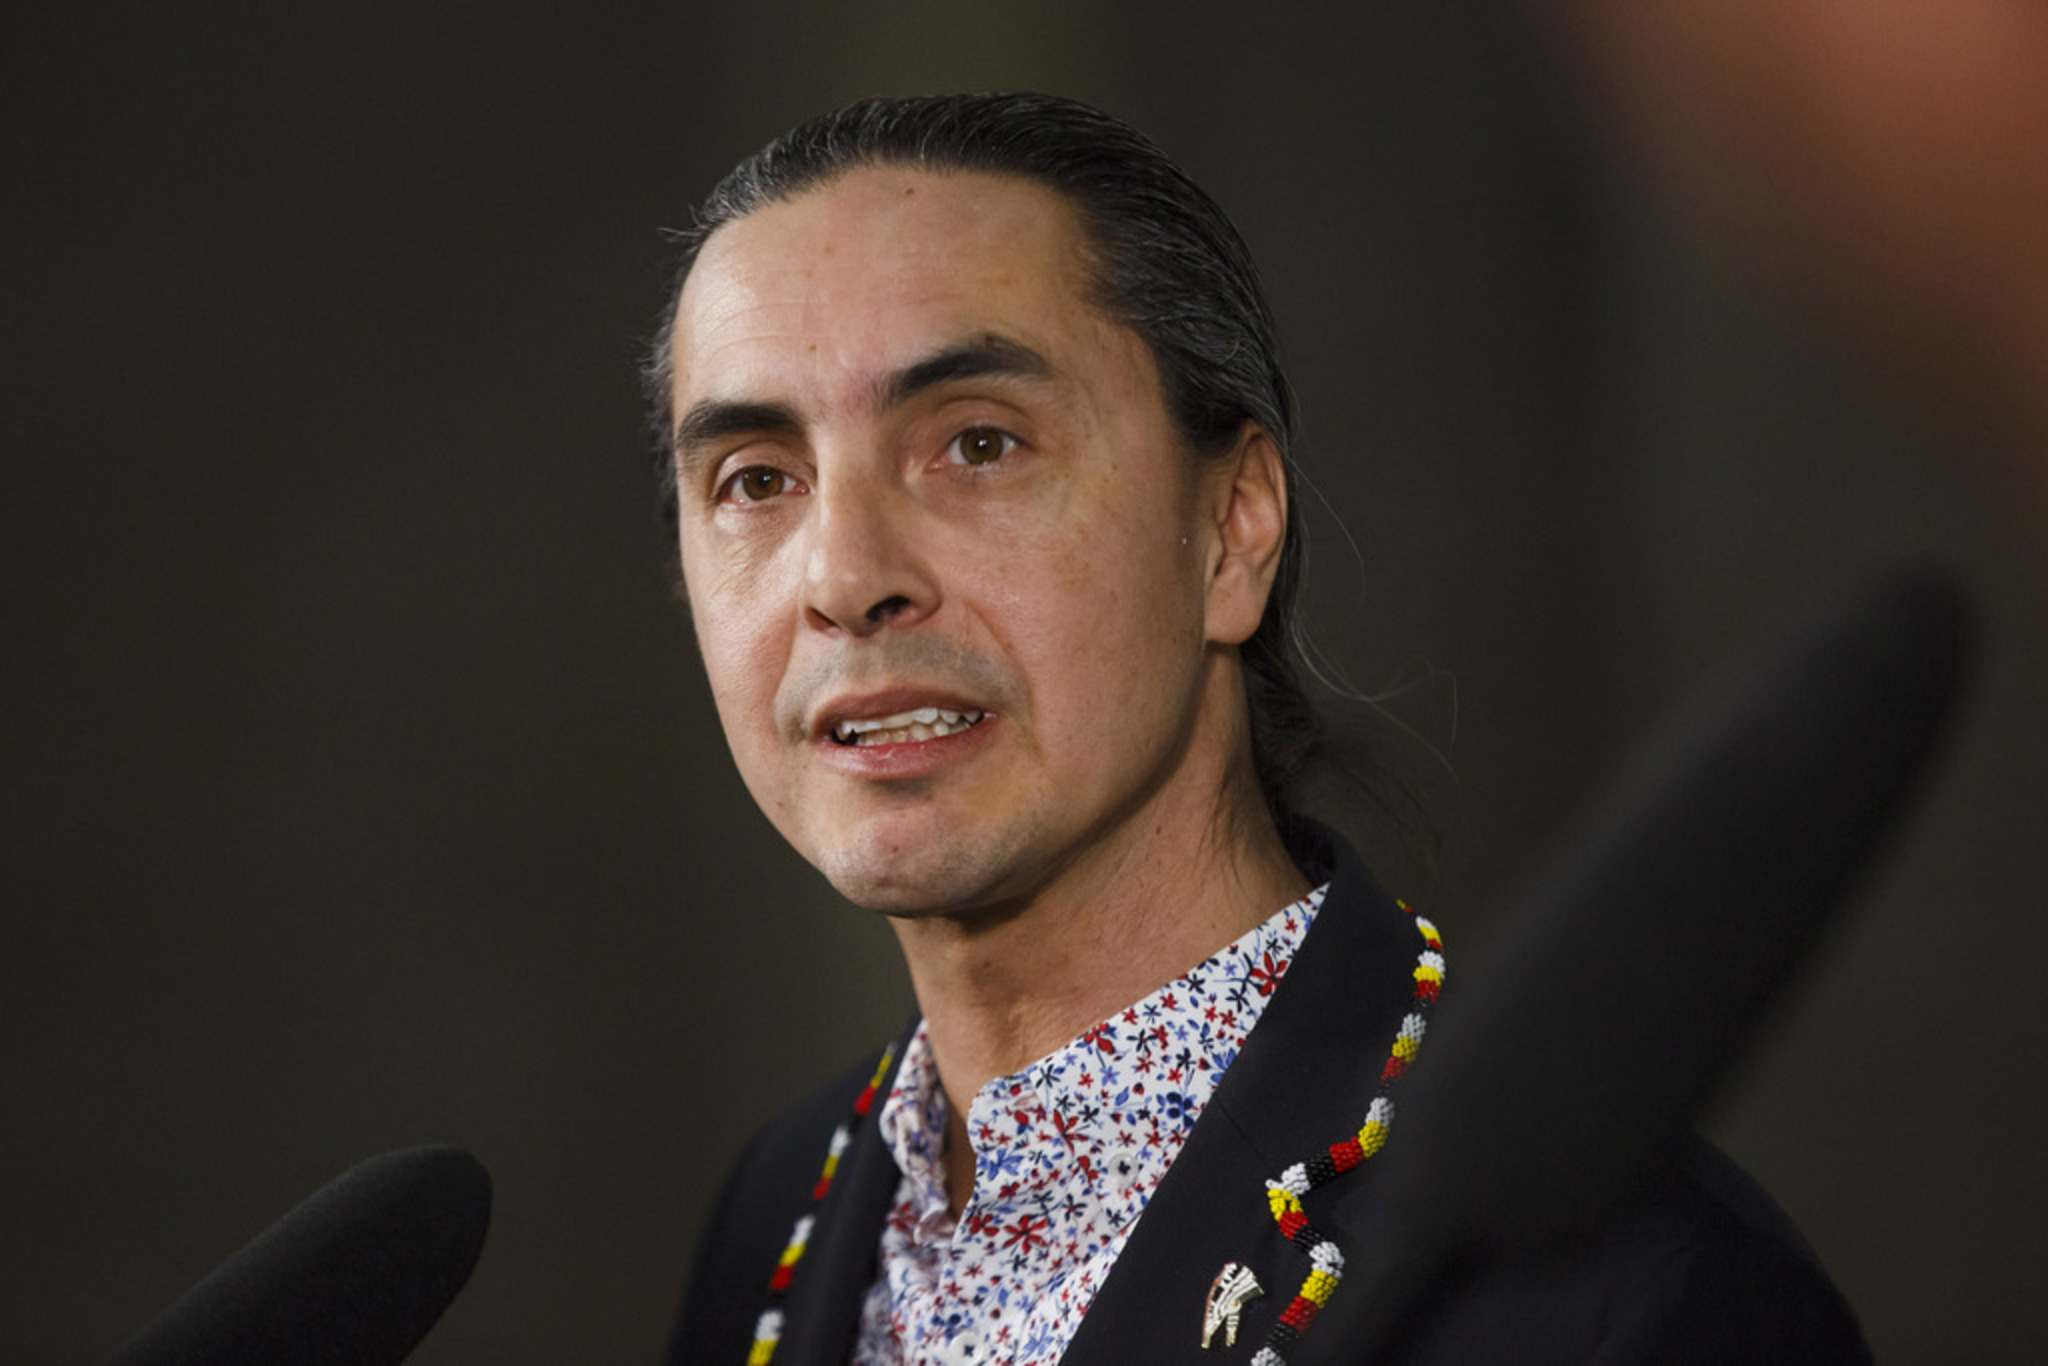 "Grand Chief Arlen Dumas of the Assembly of Manitoba Chiefs said the new rate schedule proposed by Hydro ""is not reasonable, as it unjustly impacts First Nations customers."" (Mike Deal / Winnipeg Free Press files)"